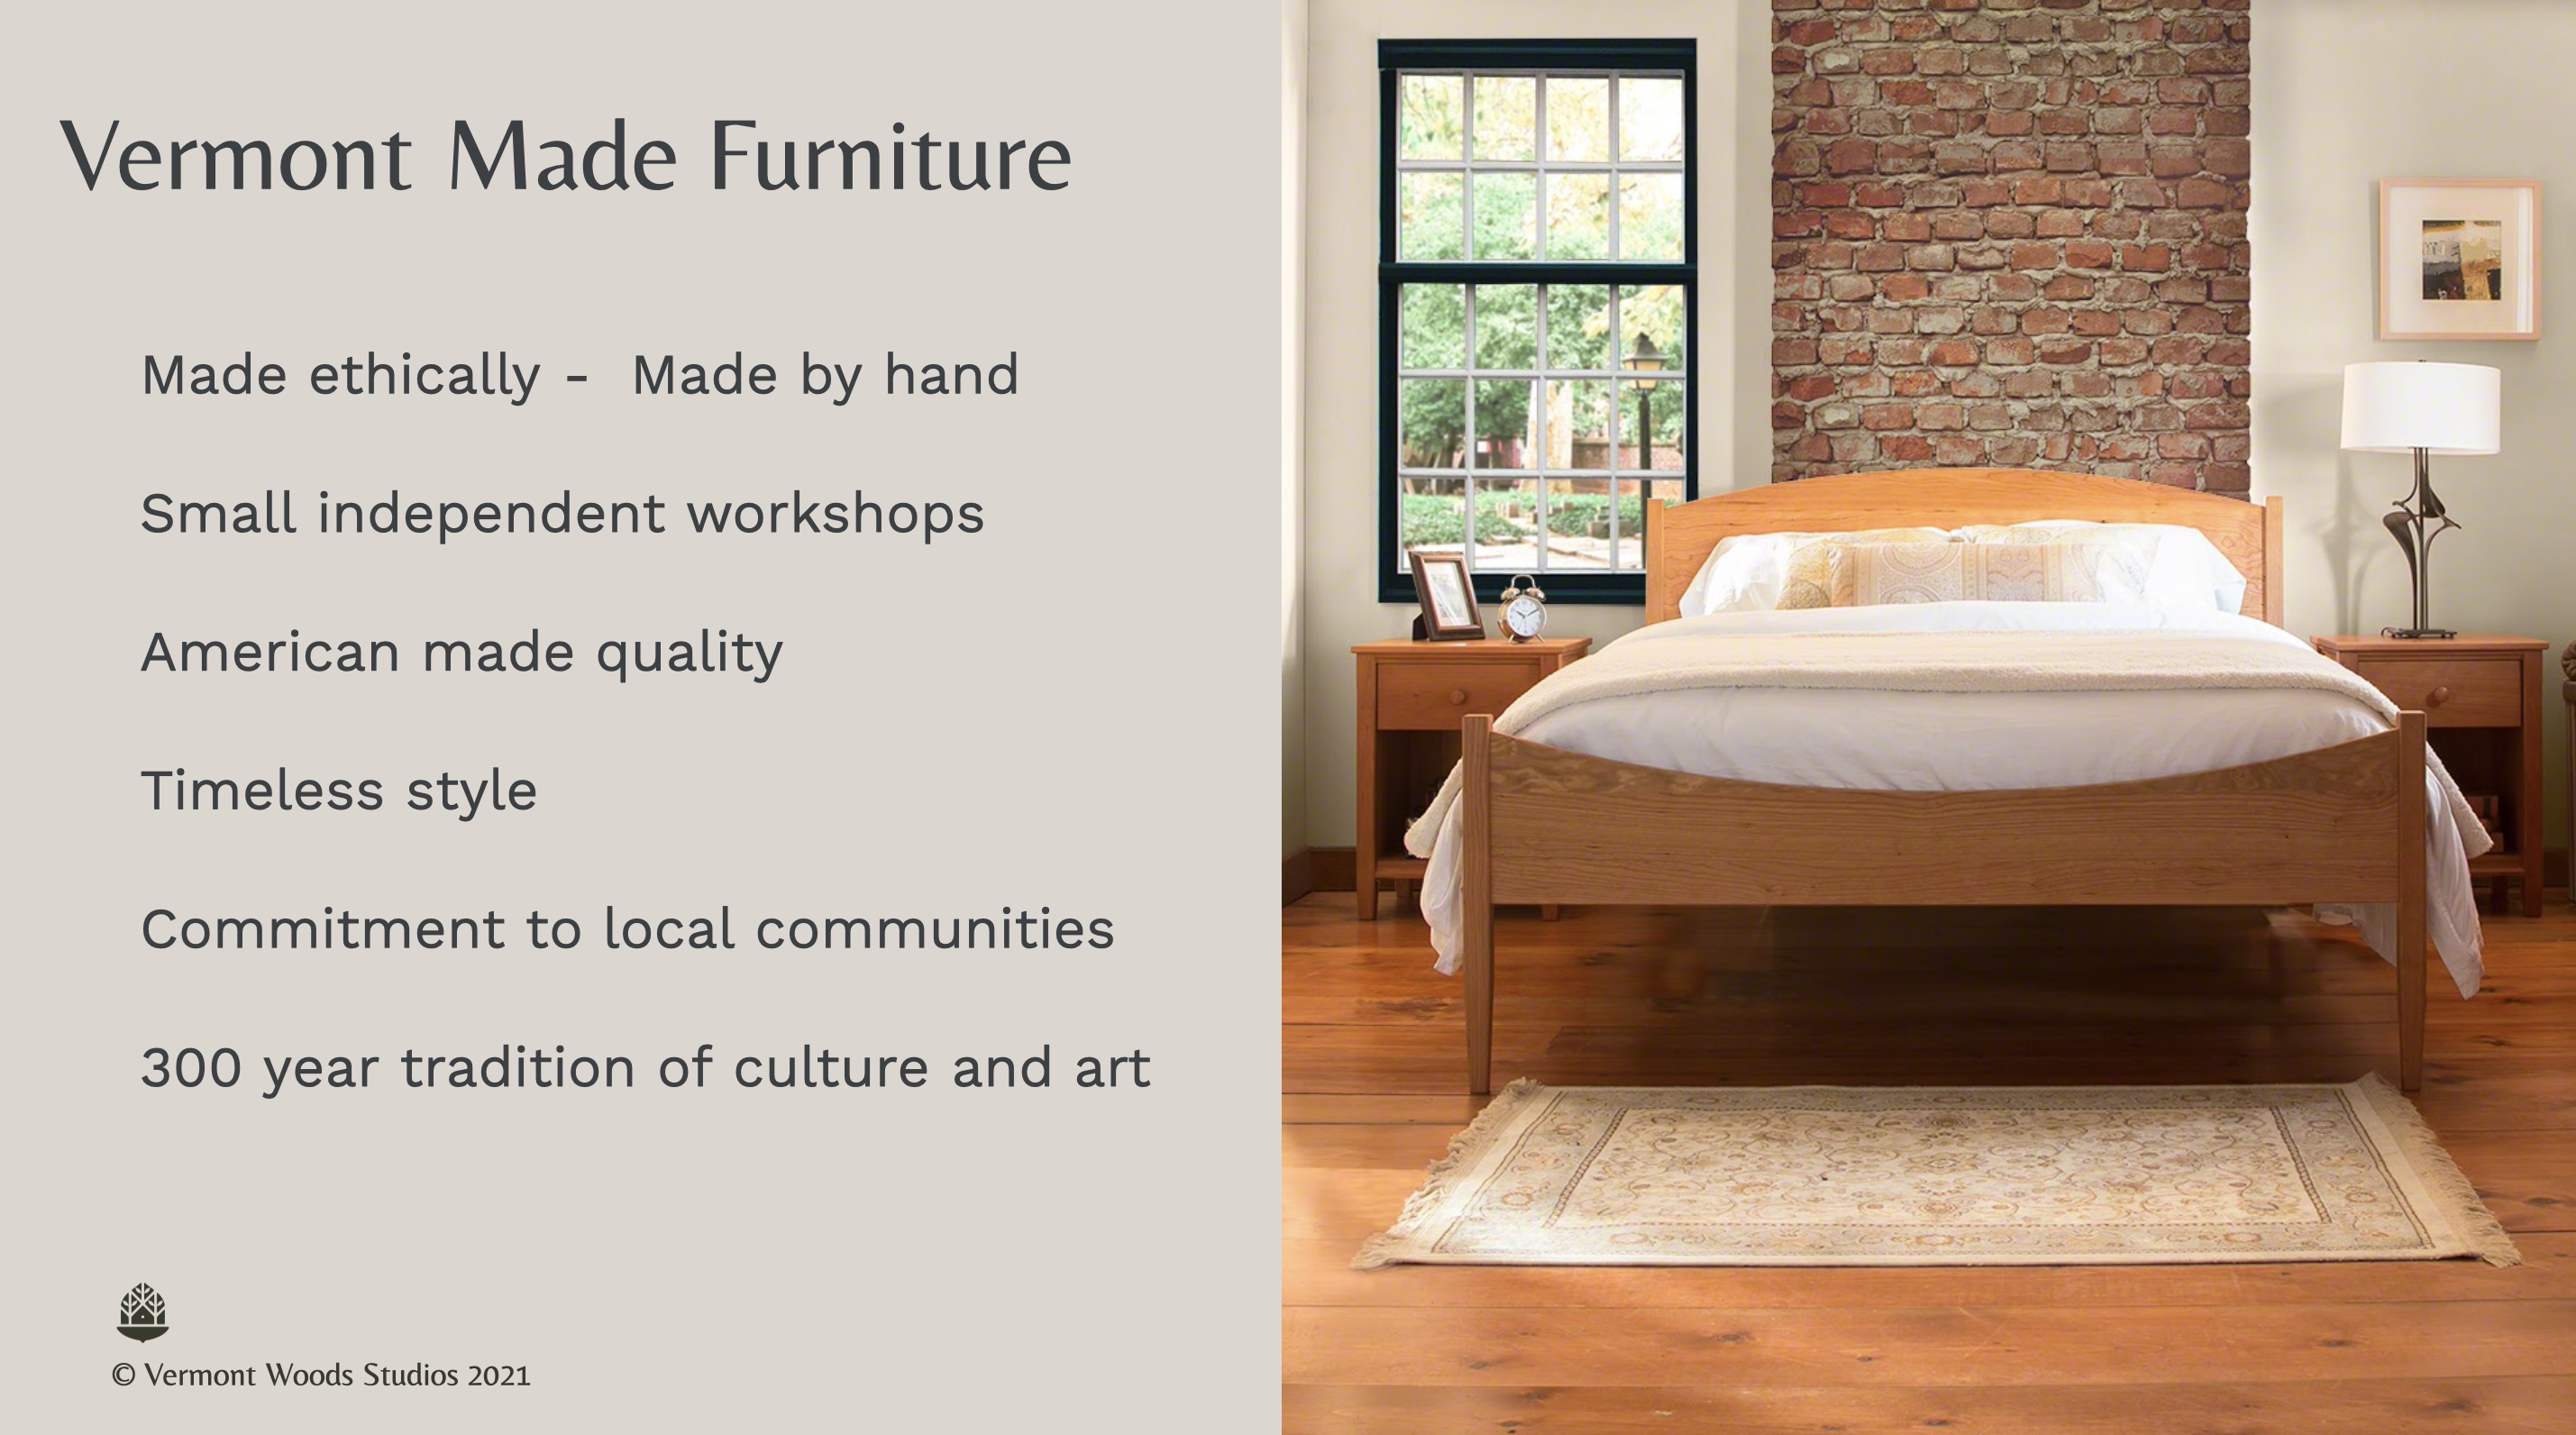 Vermont Furniture is Special